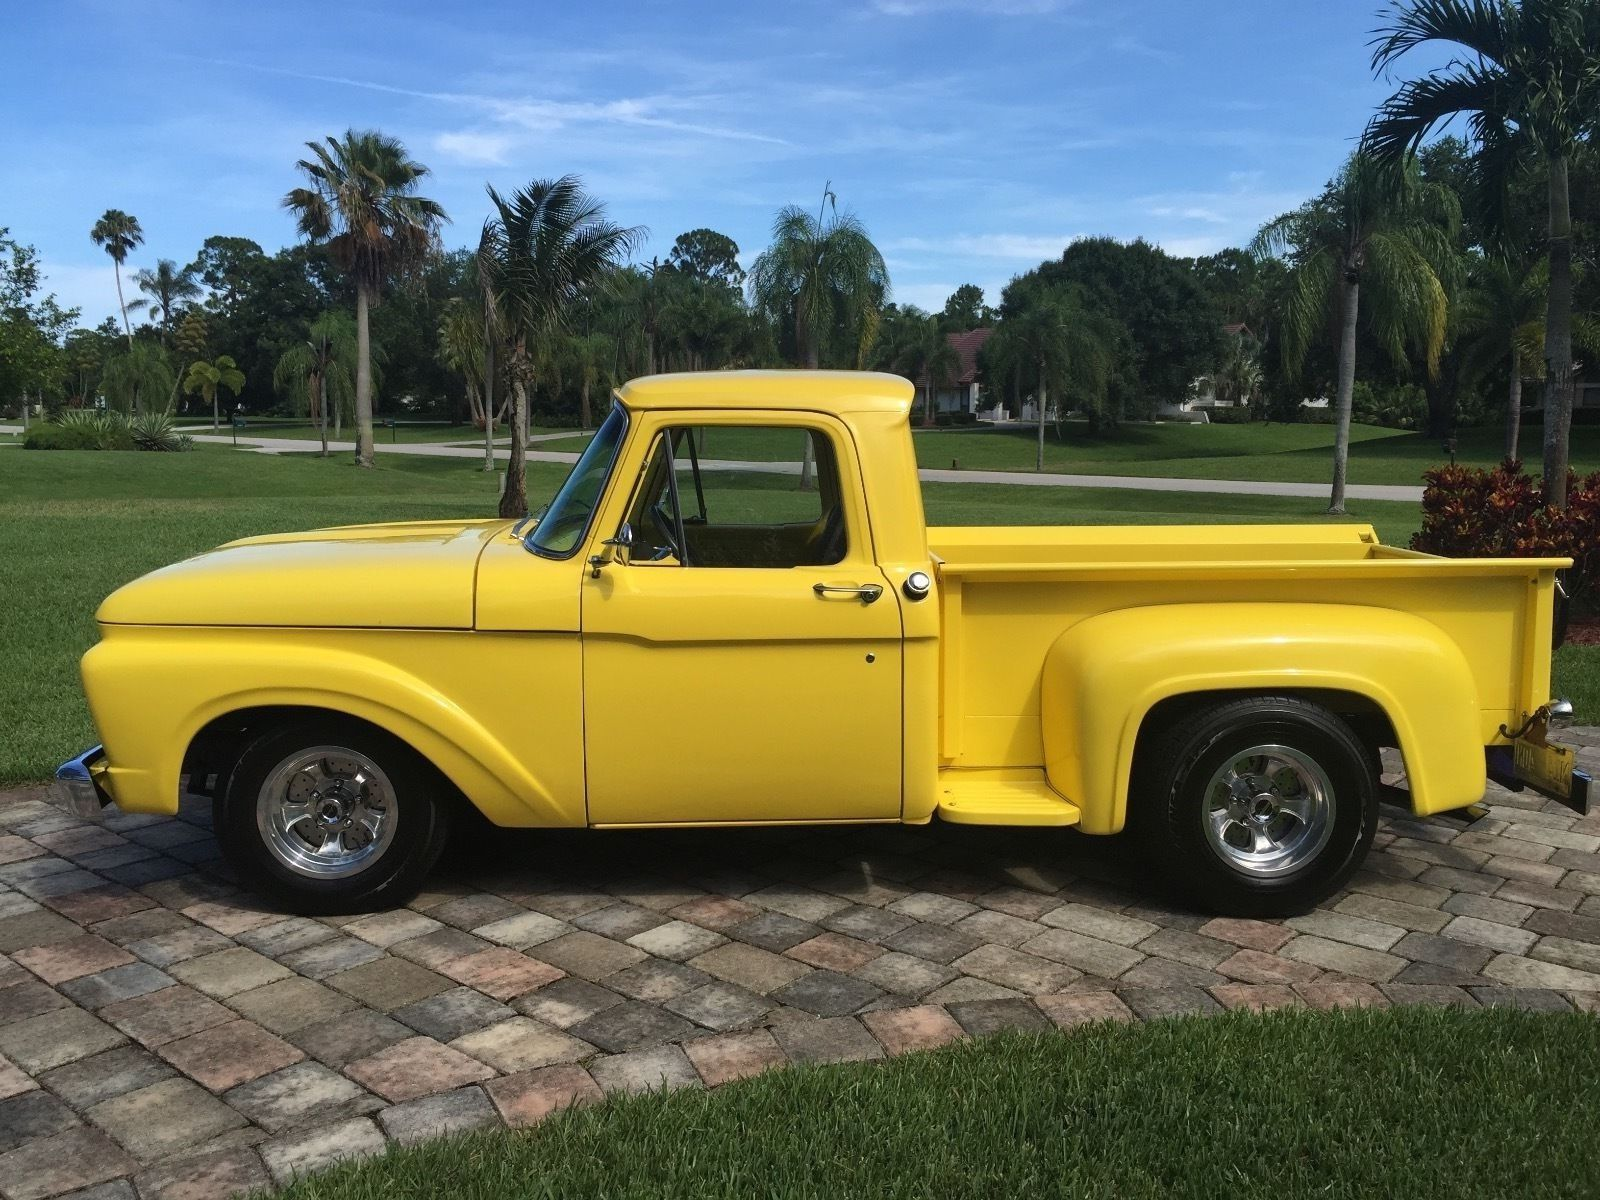 Ford F 100 Step Side 2 Door Truck Ford Trucks Old Ford Trucks Cars Trucks